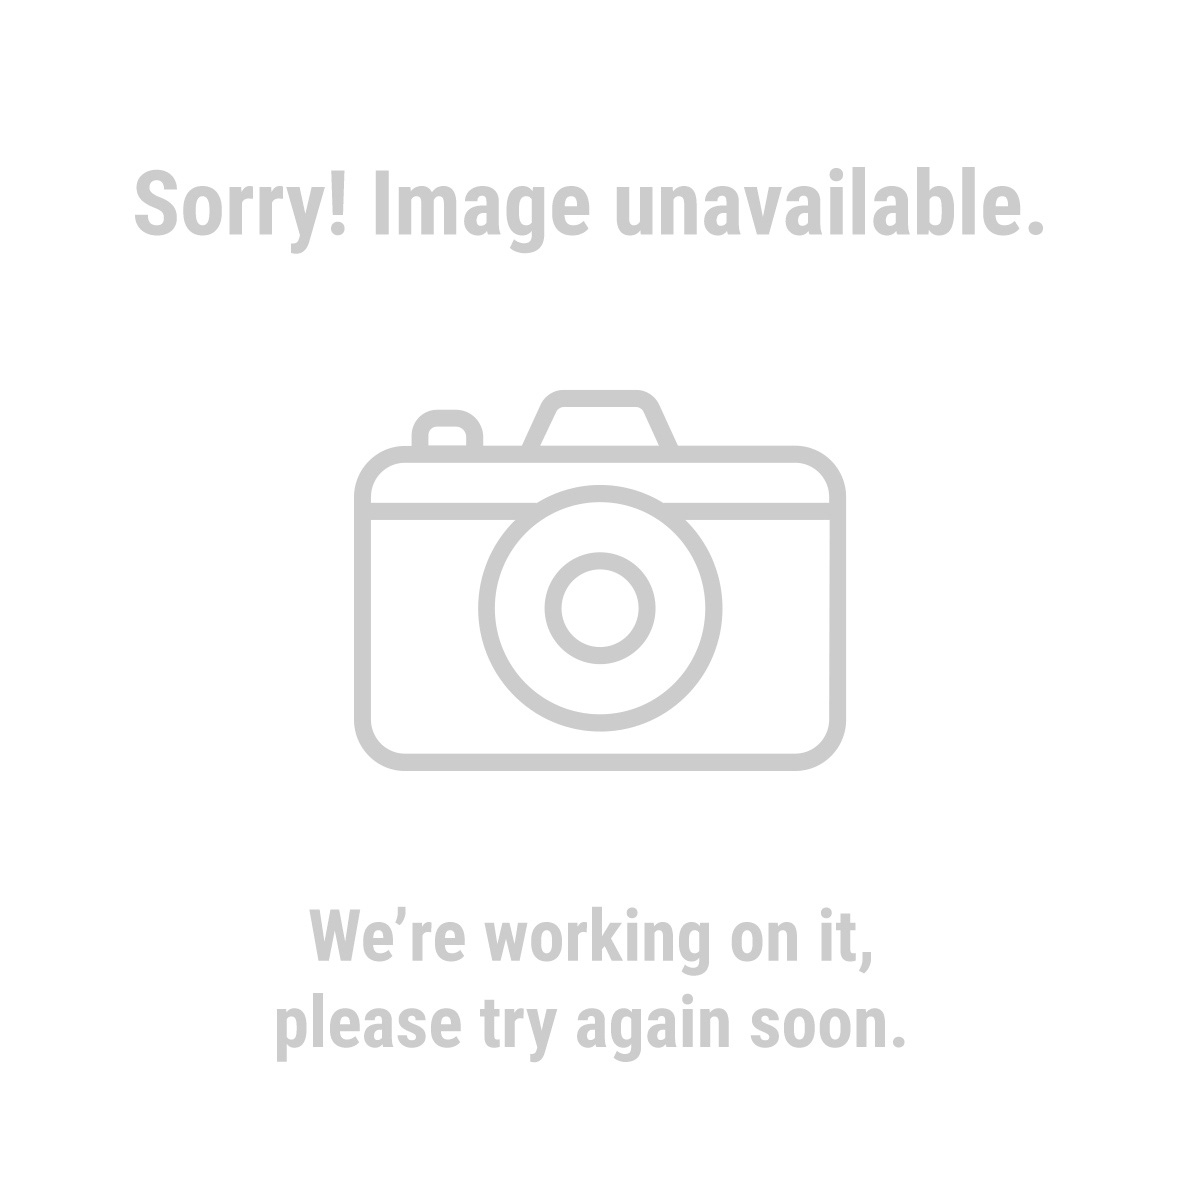 12 In X 12 In Self Adhesive Rubber Safety Mat With Tread